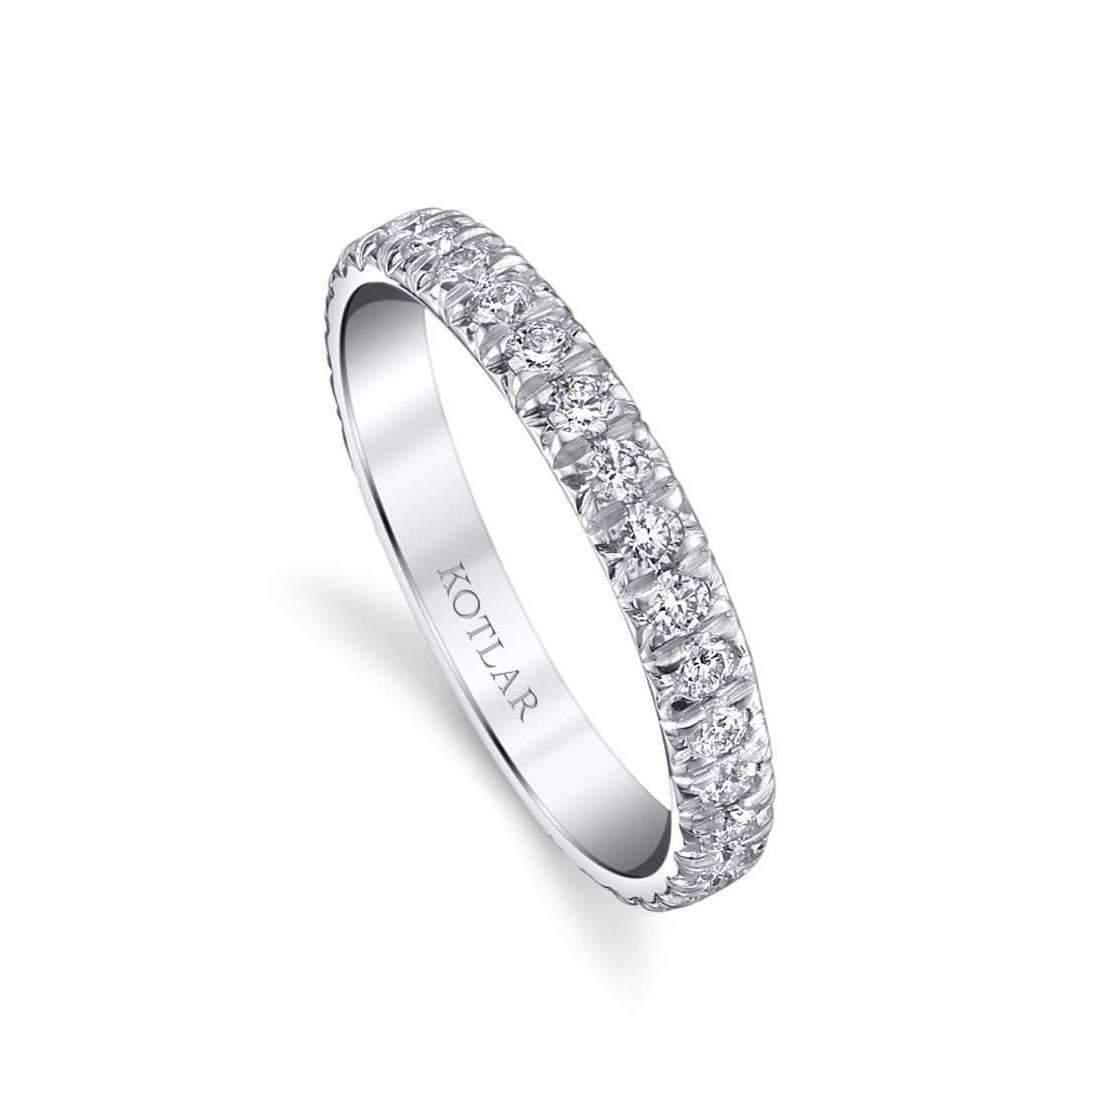 Harry Kotlar French Cut Artisan Pave Band - UK M - US 6 - EU 52 3/4 6fmwE